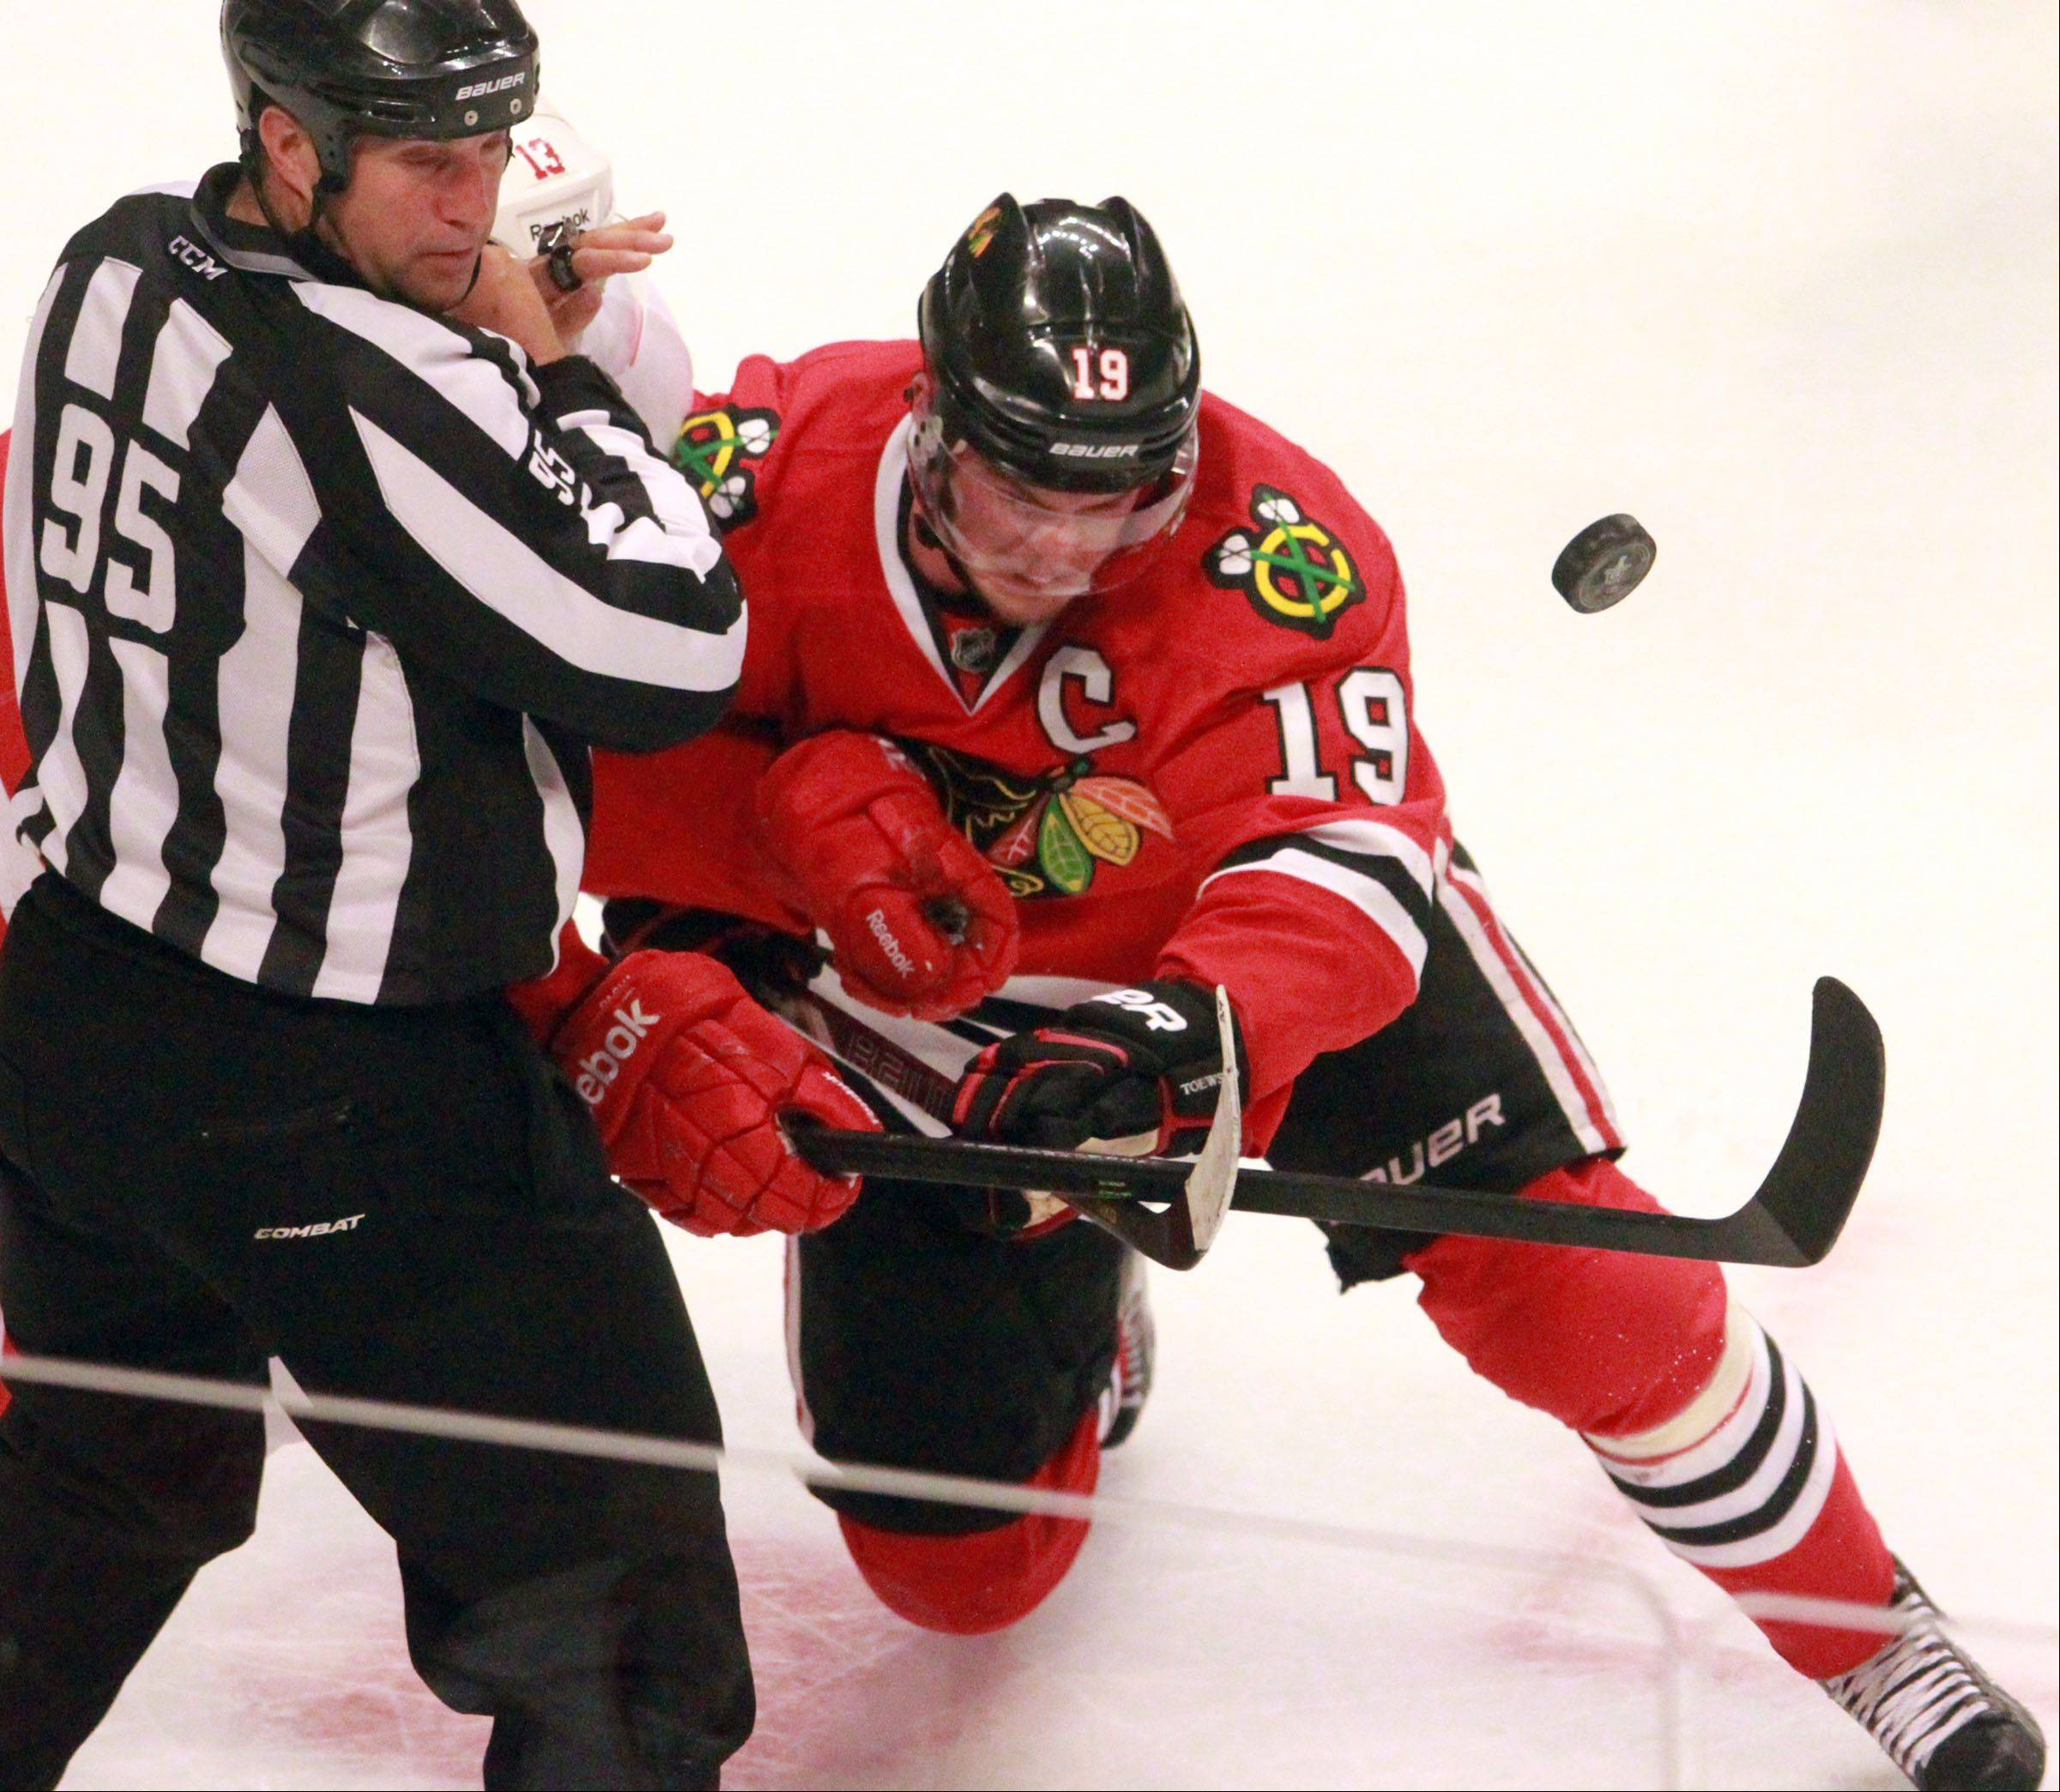 Jonathan Toews fights for puck position during the second period of Game 2.